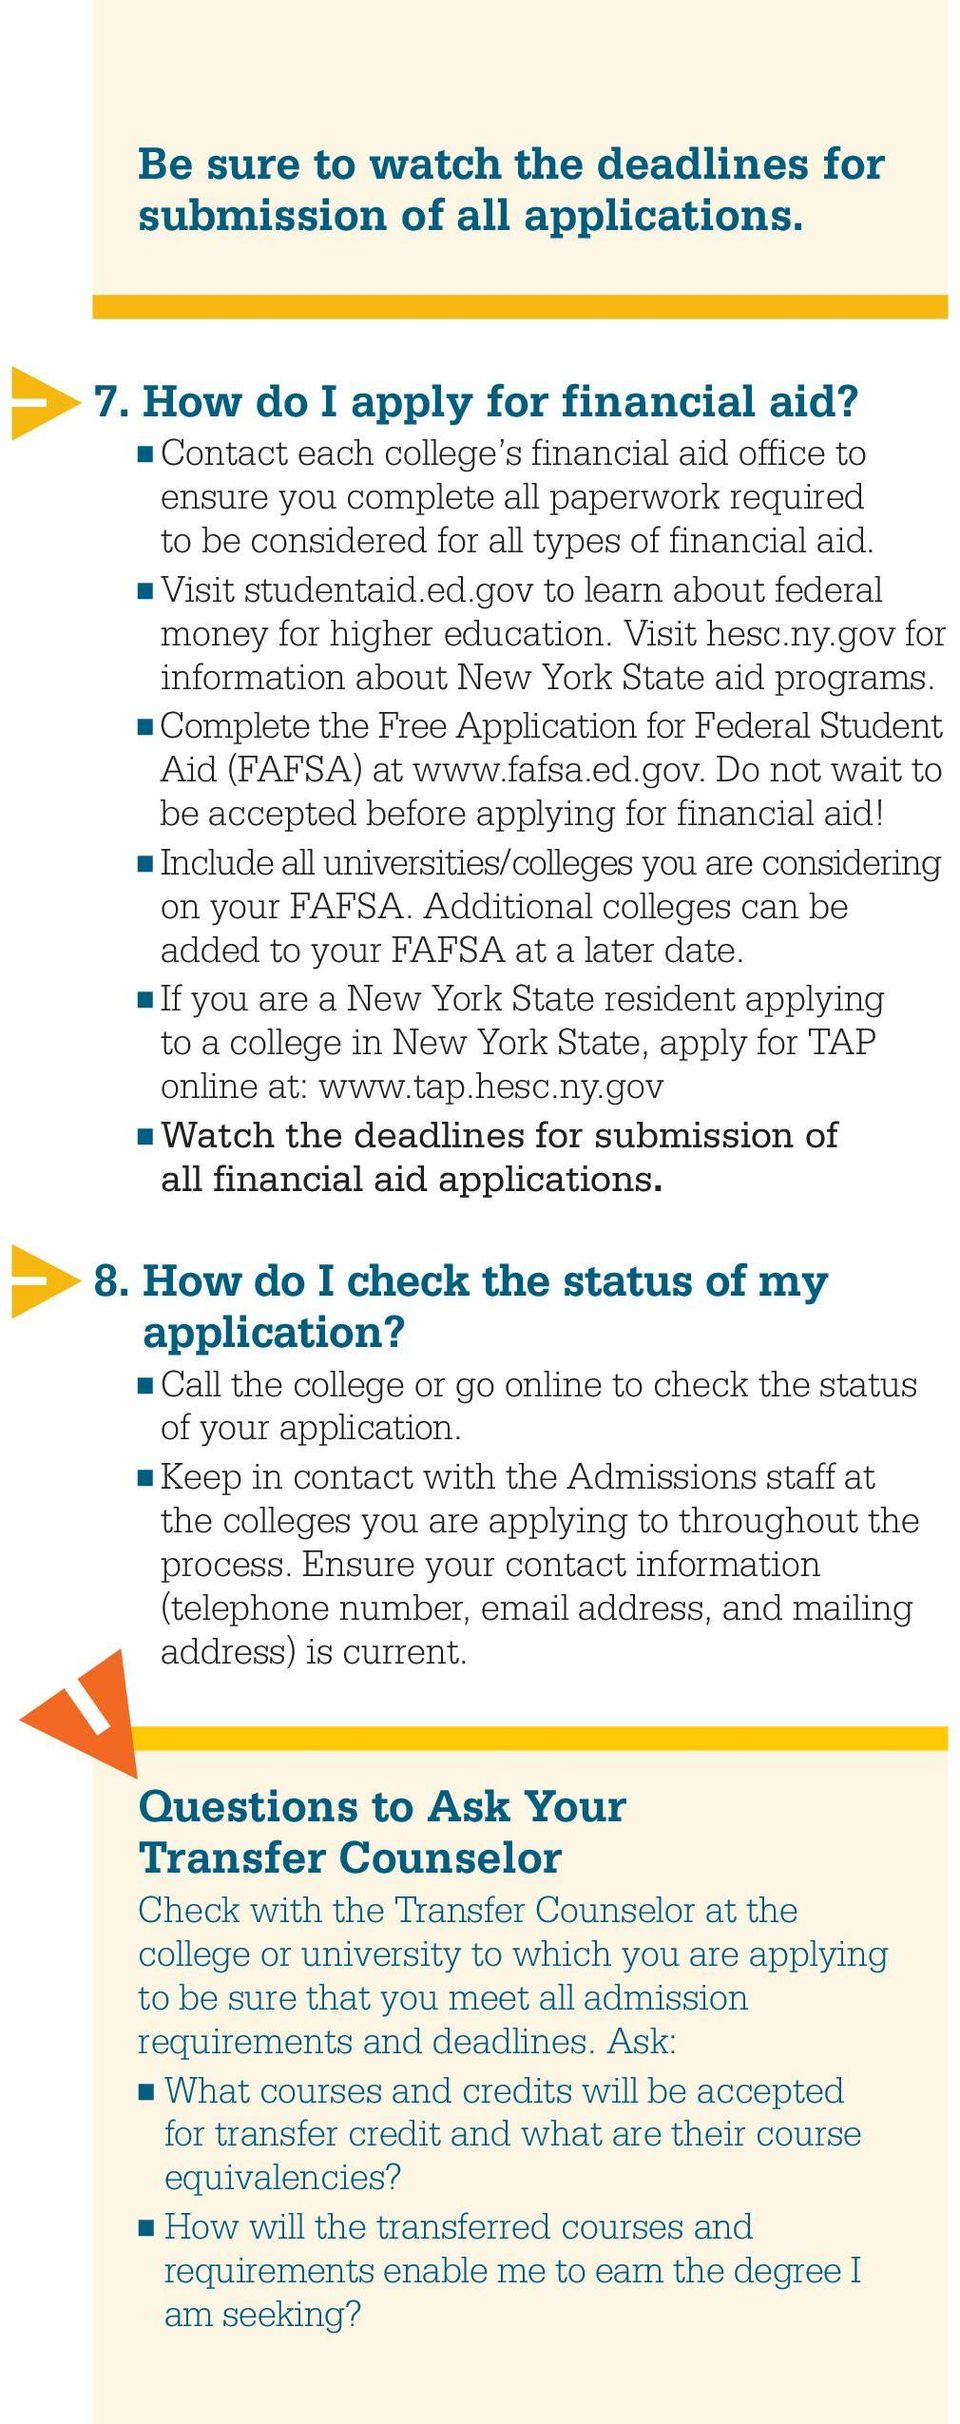 Visit hesc.ny.gov for information about New York State aid programs. Complete the Free Application for Federal Student Aid (FAFSA) at www.fafsa.ed.gov. Do not wait to be accepted before applying for financial aid!